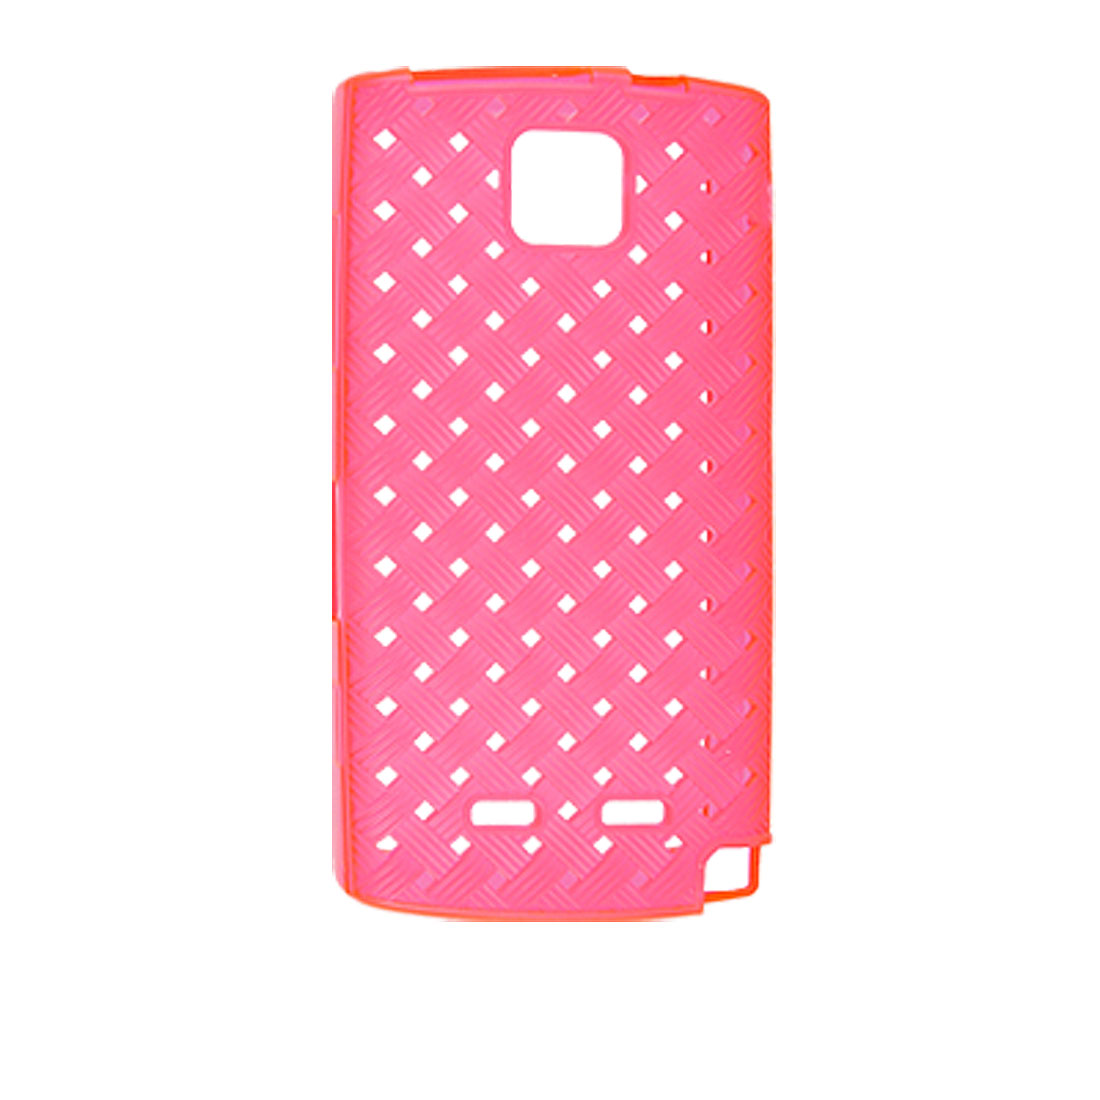 Antislip Hot Pink Plastic Soft Weave Case Cover for Nokia 5250